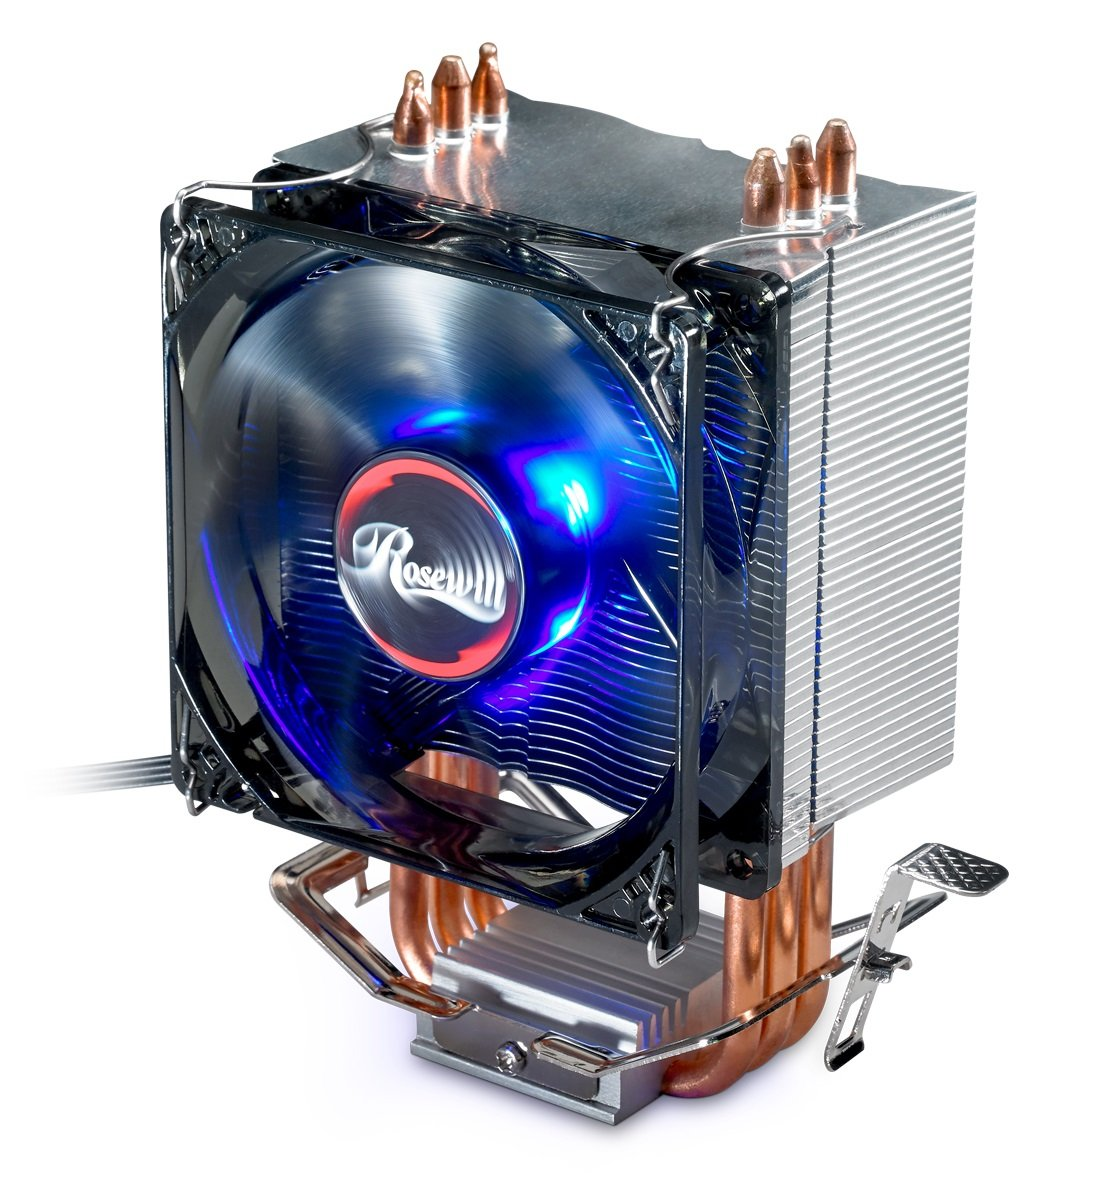 Cheap I5 Cpu Socket Find Deals On Line At Alibabacom Fan Processor Lga 775 Original Get Quotations Cooler With Pwm Cooling 3 Direct Contact Heatsink Pipes Support Intel